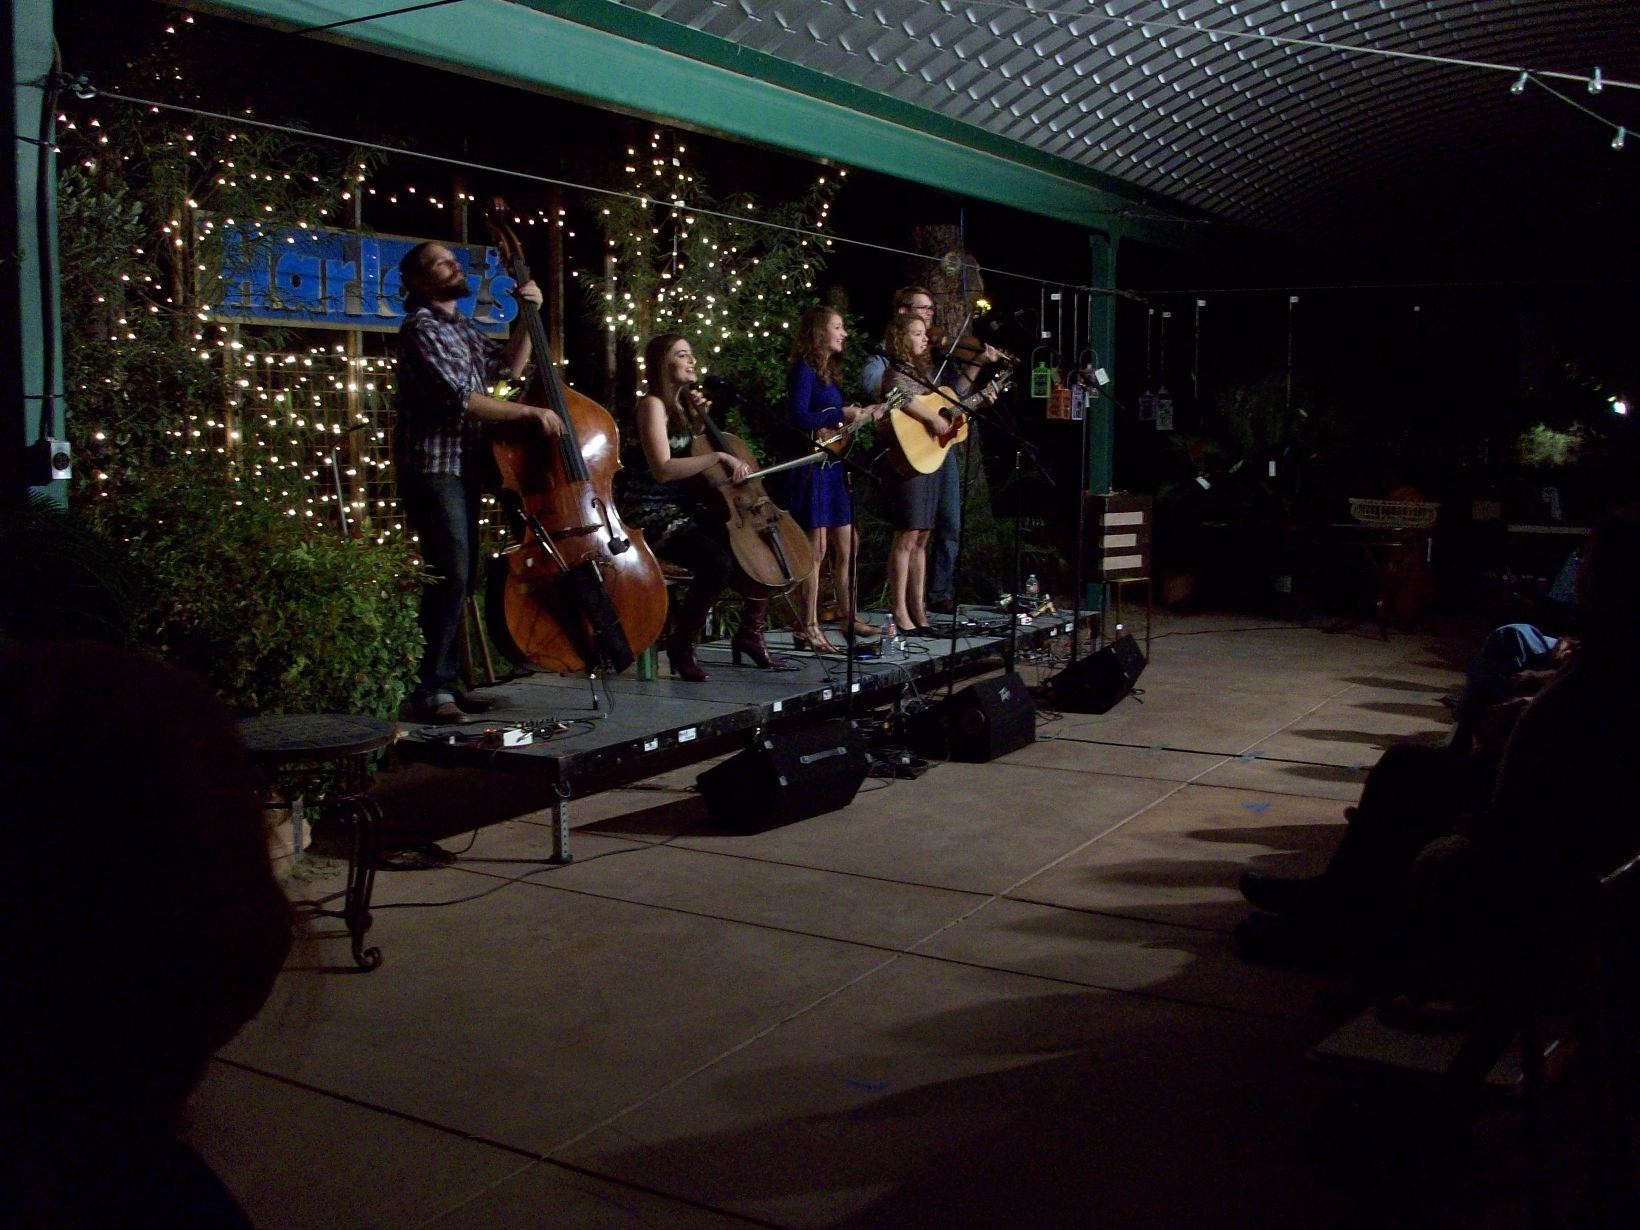 Concerts In The Green: Harlow Gardensu0027 Pavilion Brings Music | Arts And  Theater | Tucson.com